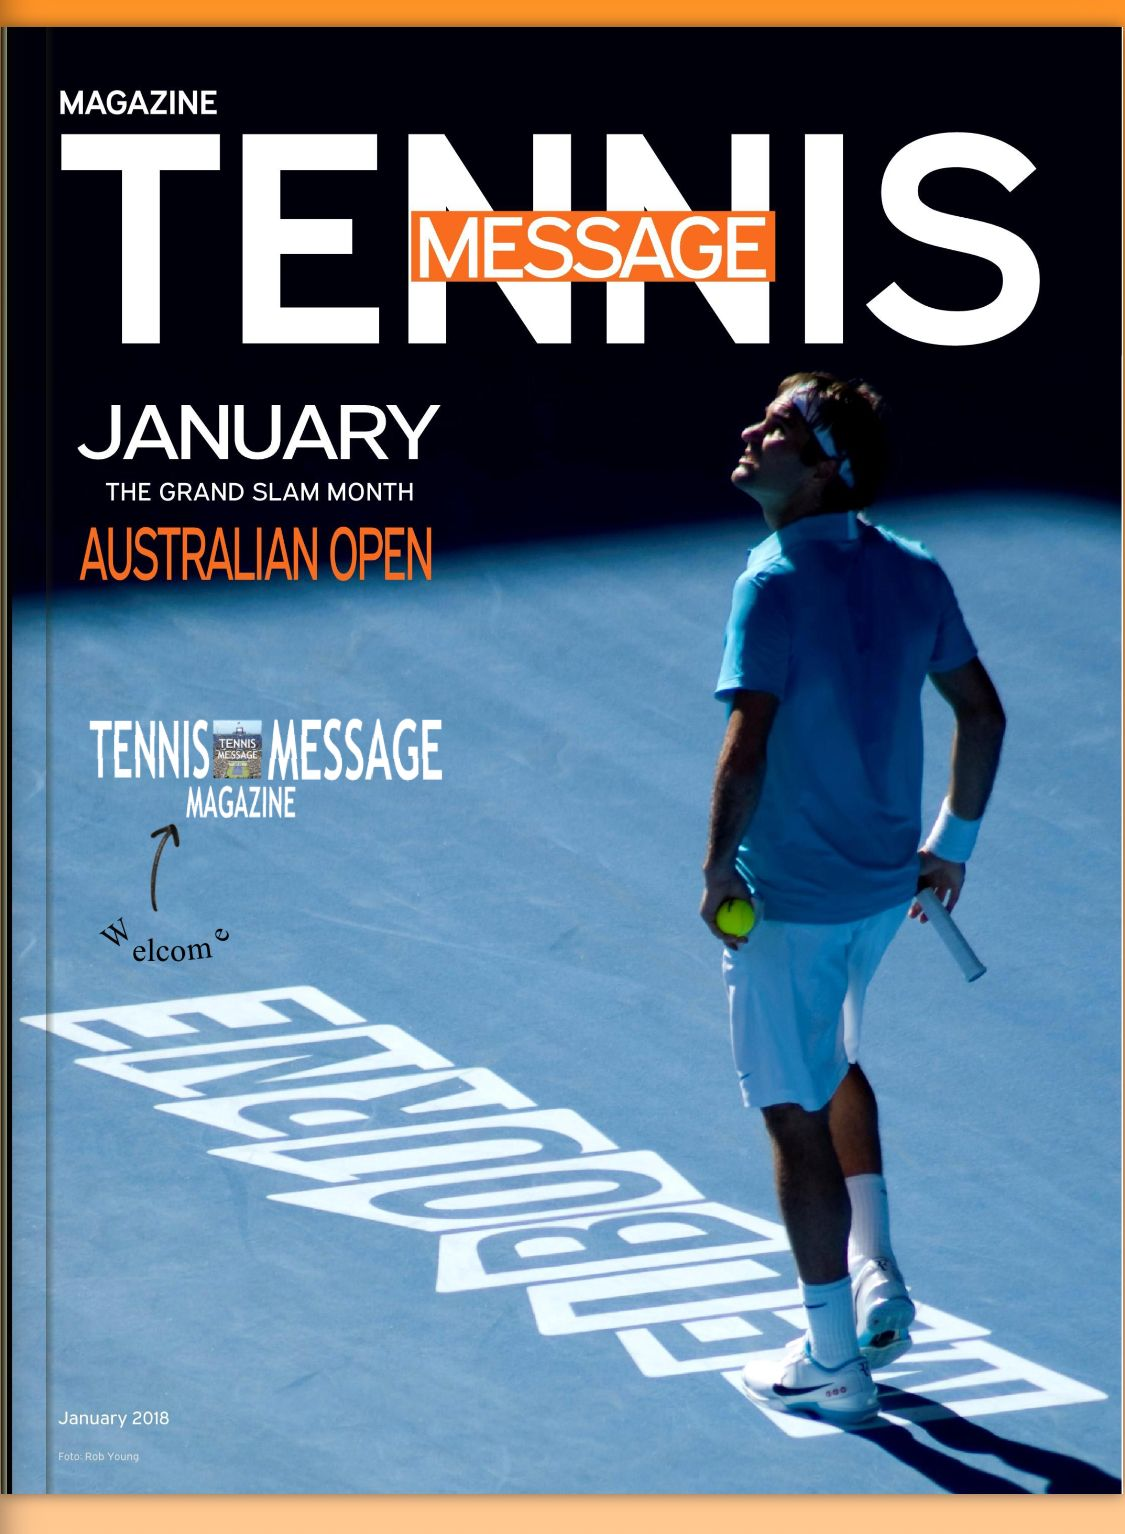 January TennisMessage Magazine cover . Read it for free